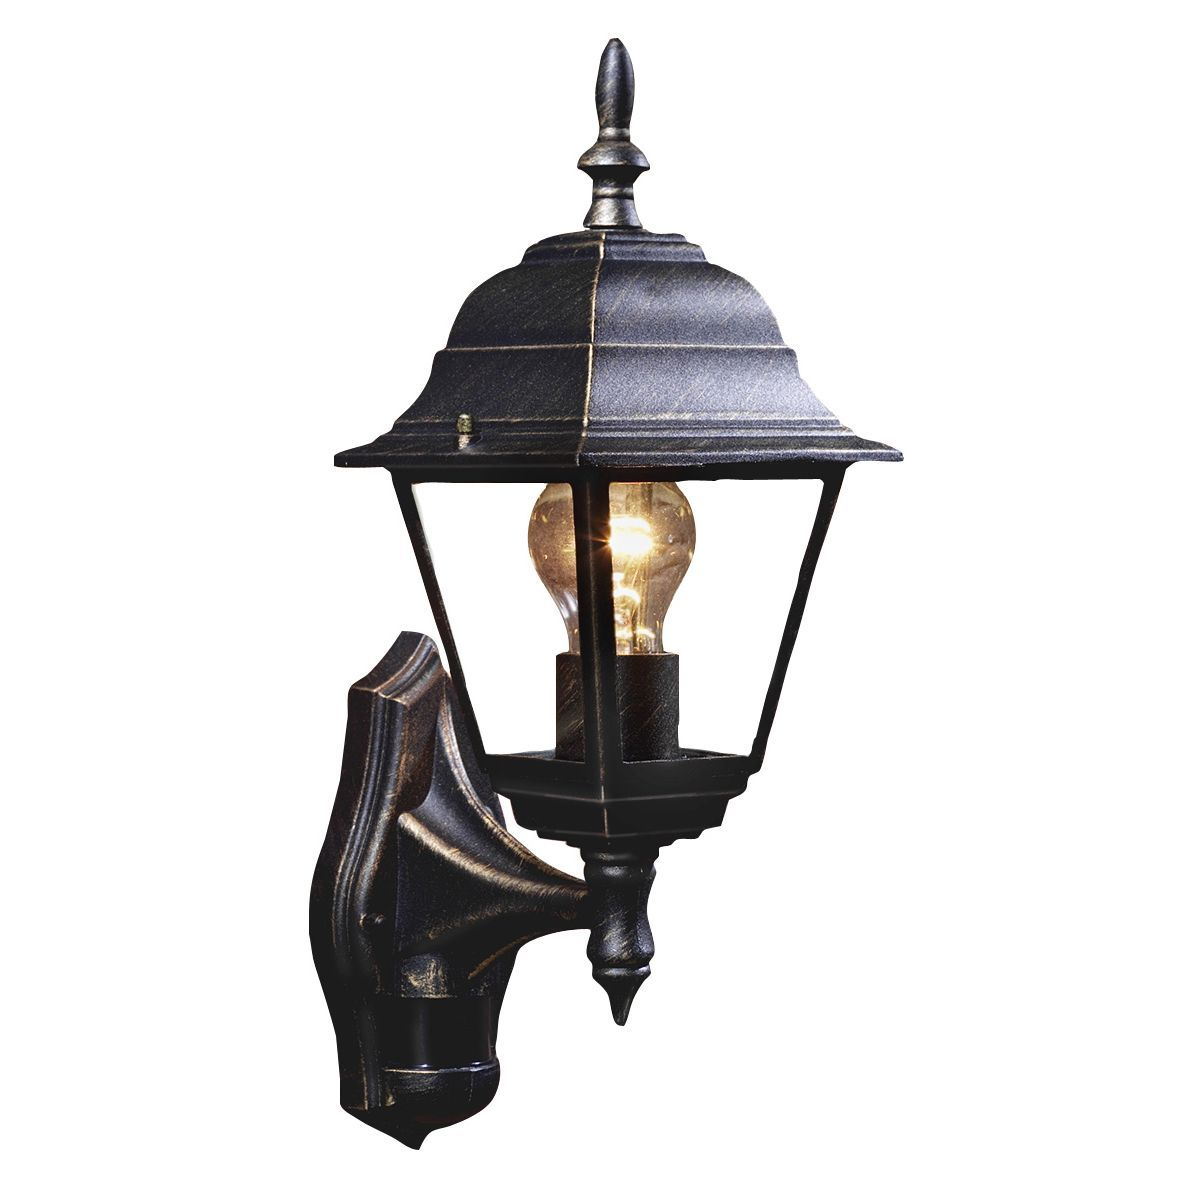 Bq polperro antique effect black 60w mains powered external pir bq polperro antique effect black 60w mains powered external pir lantern aloadofball Gallery